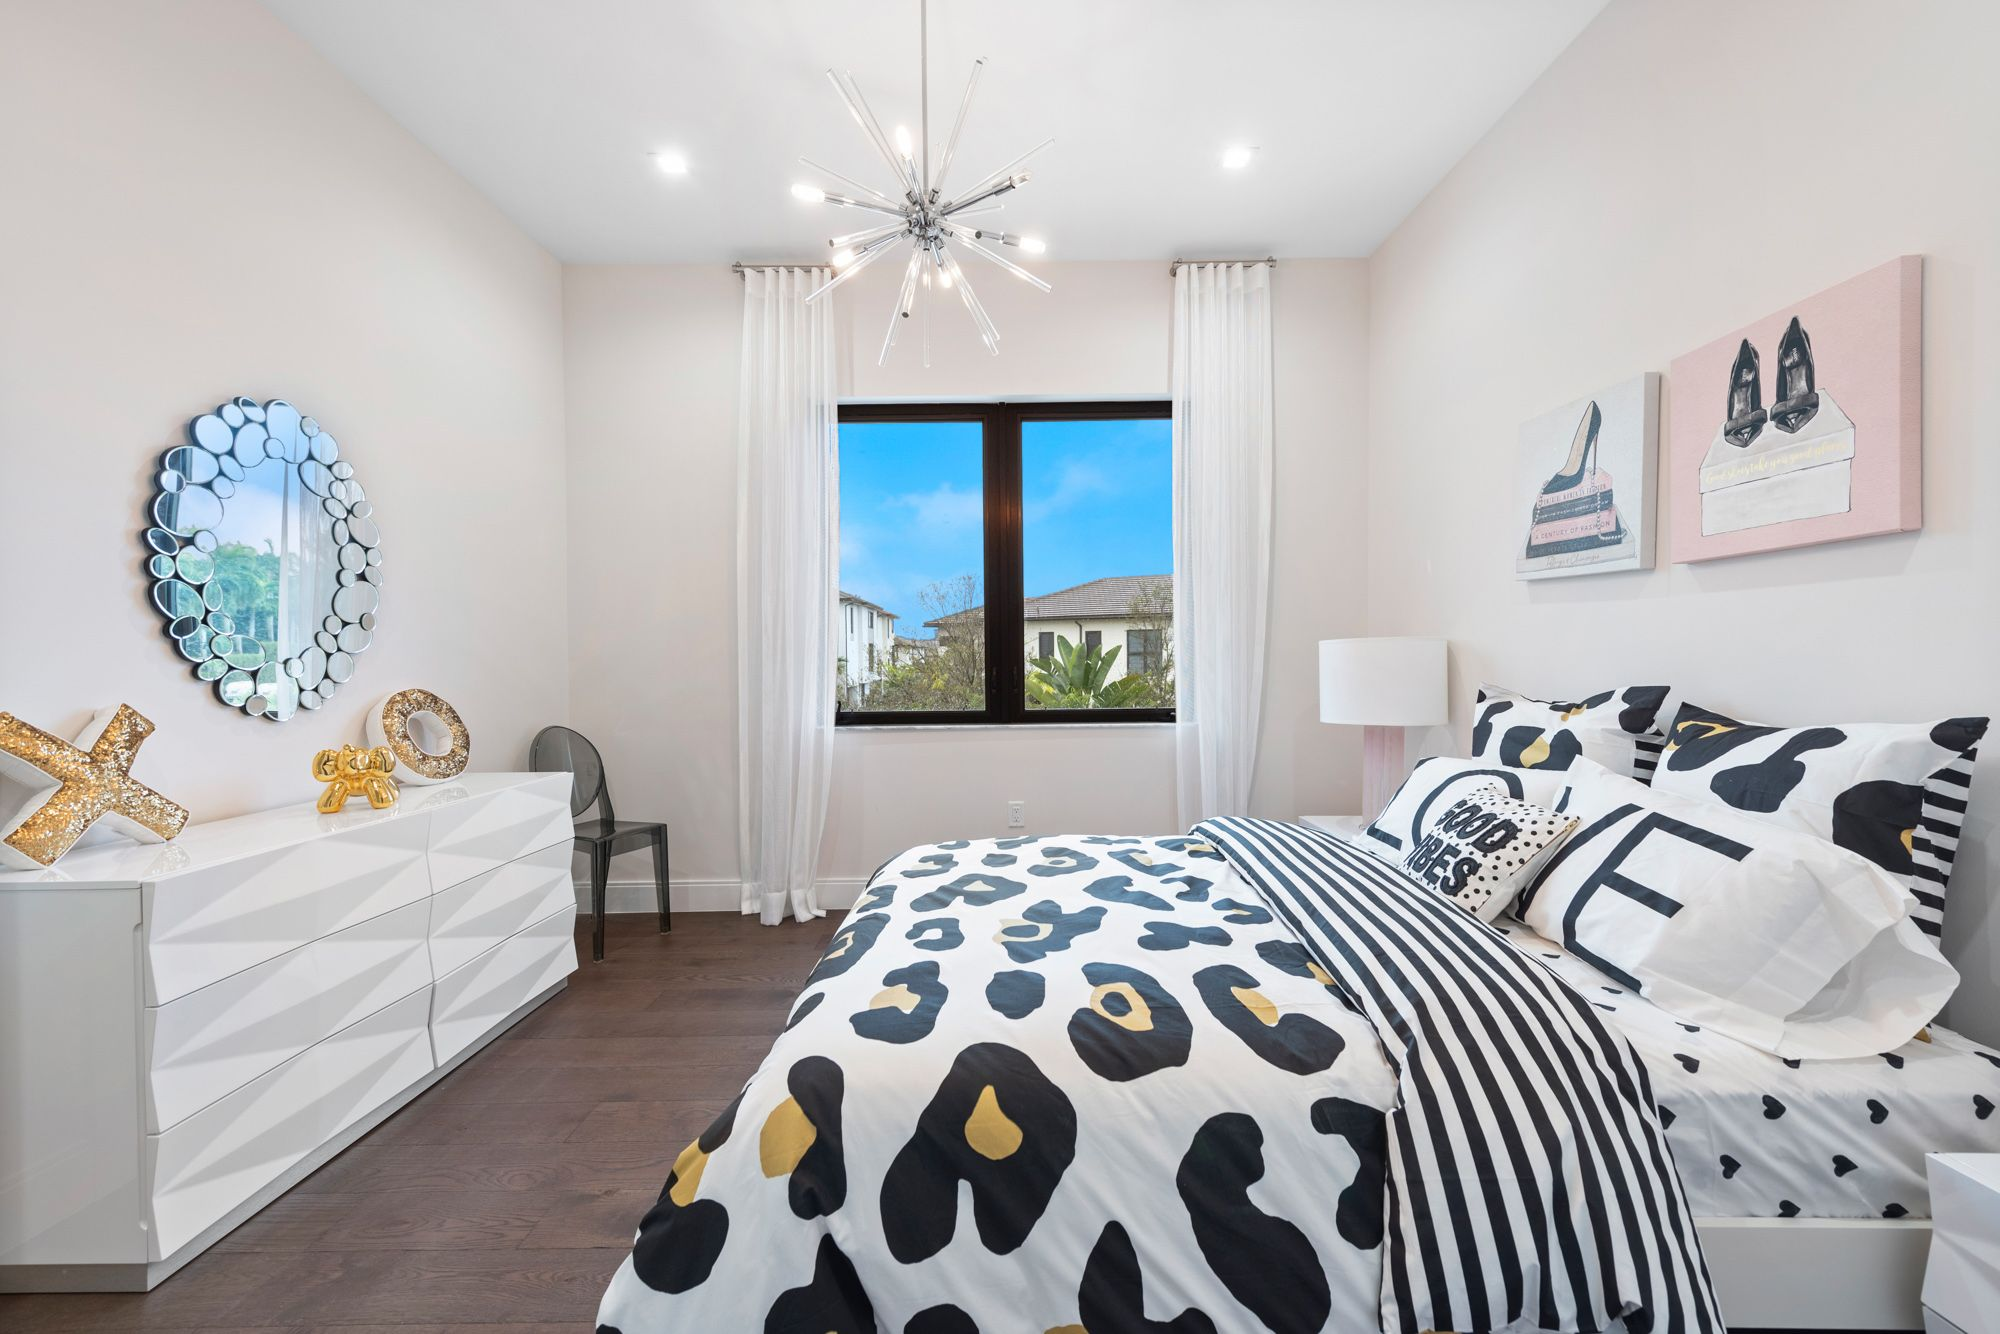 Bedroom featured in the Capri B Three Story By CC Homes in Miami-Dade County, FL